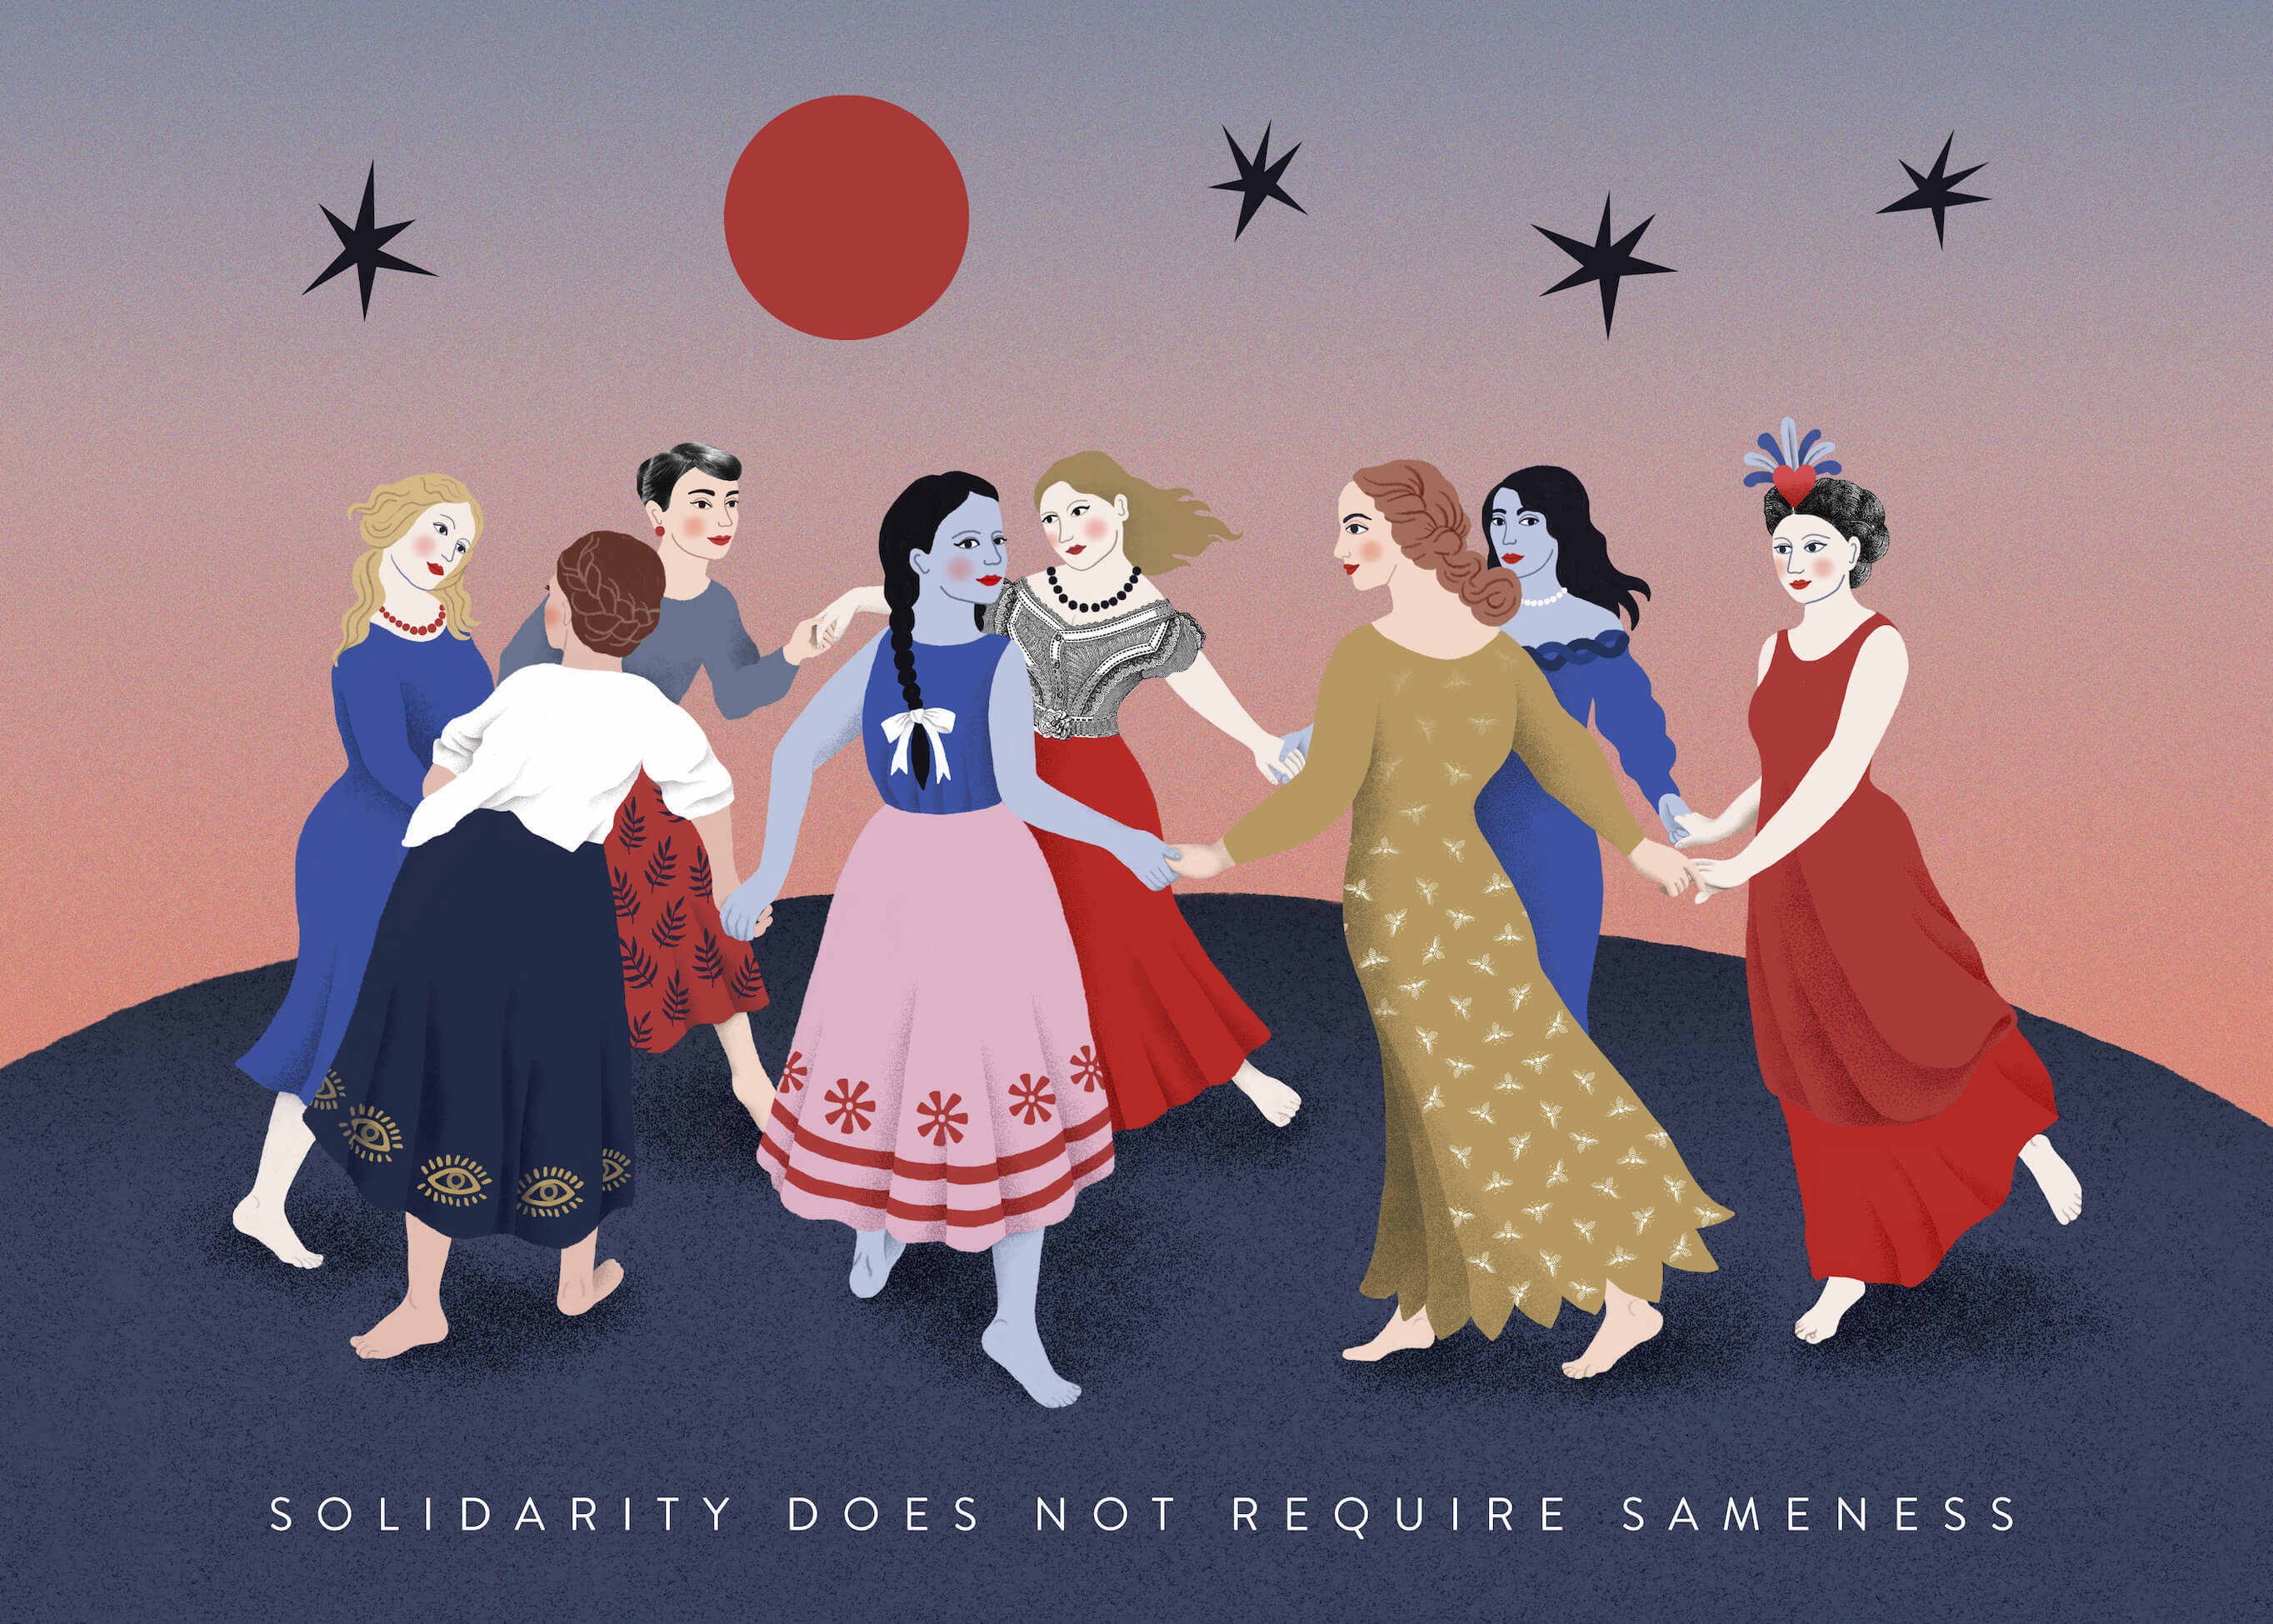 Solidarity Does Not Require Sameness main image